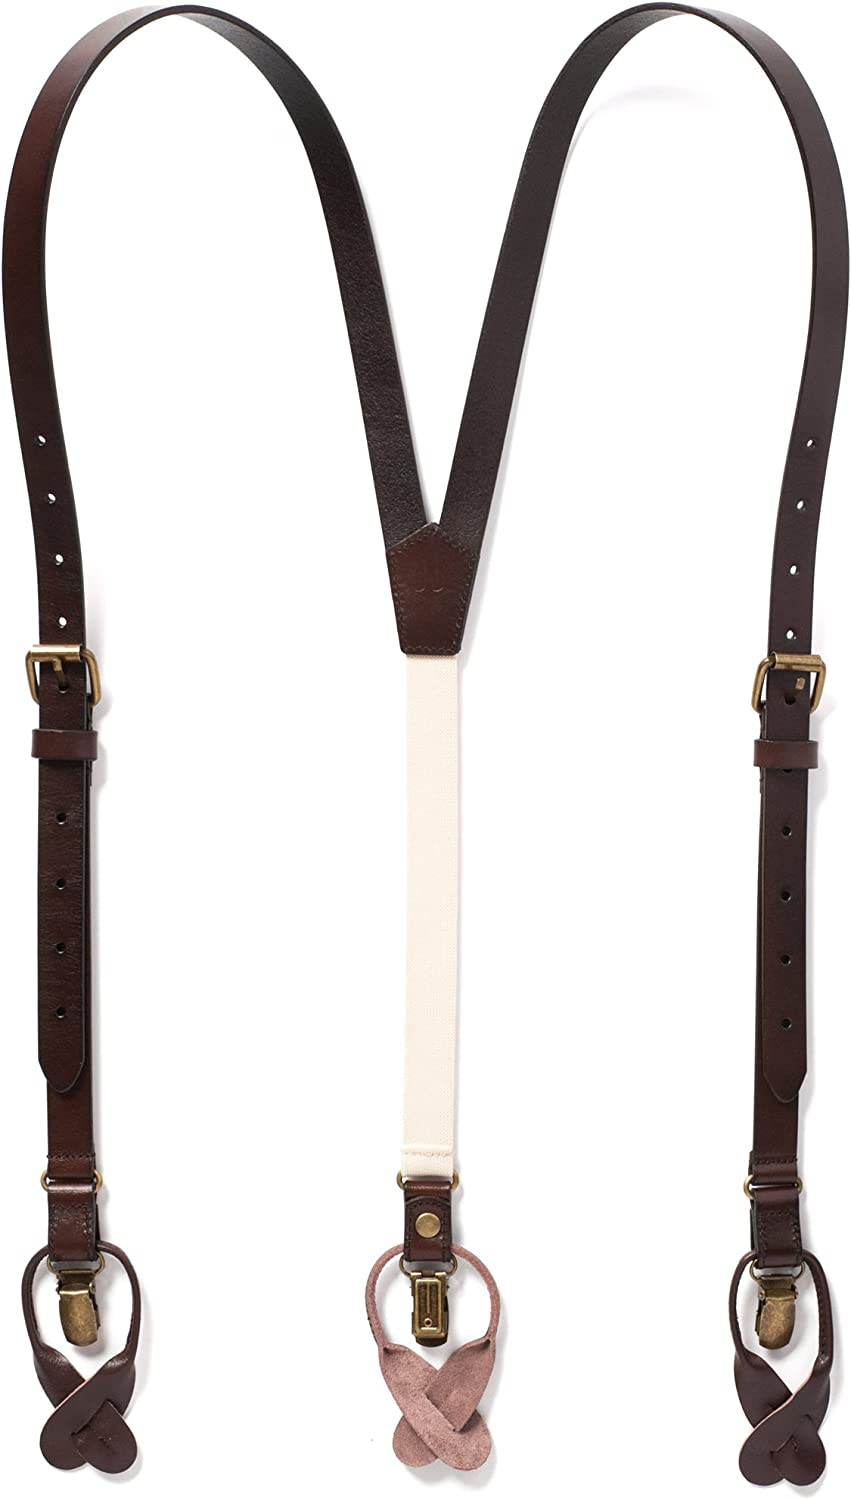 JJ SUSPENDERS Genuine Leather Suspenders For with St Inexpensive Men Elastic Brand Cheap Sale Venue